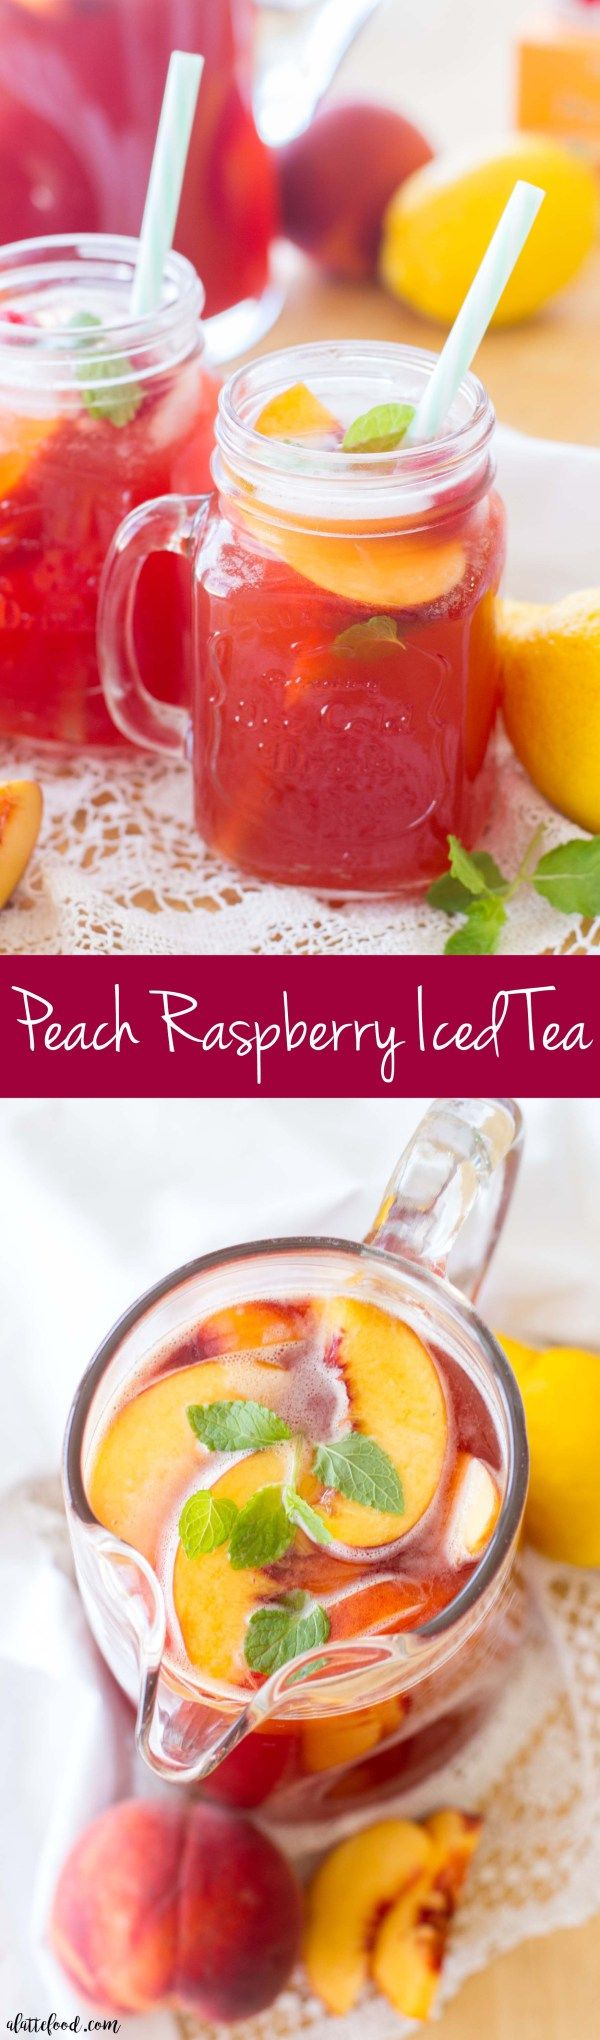 Peach Raspberry Iced Tea